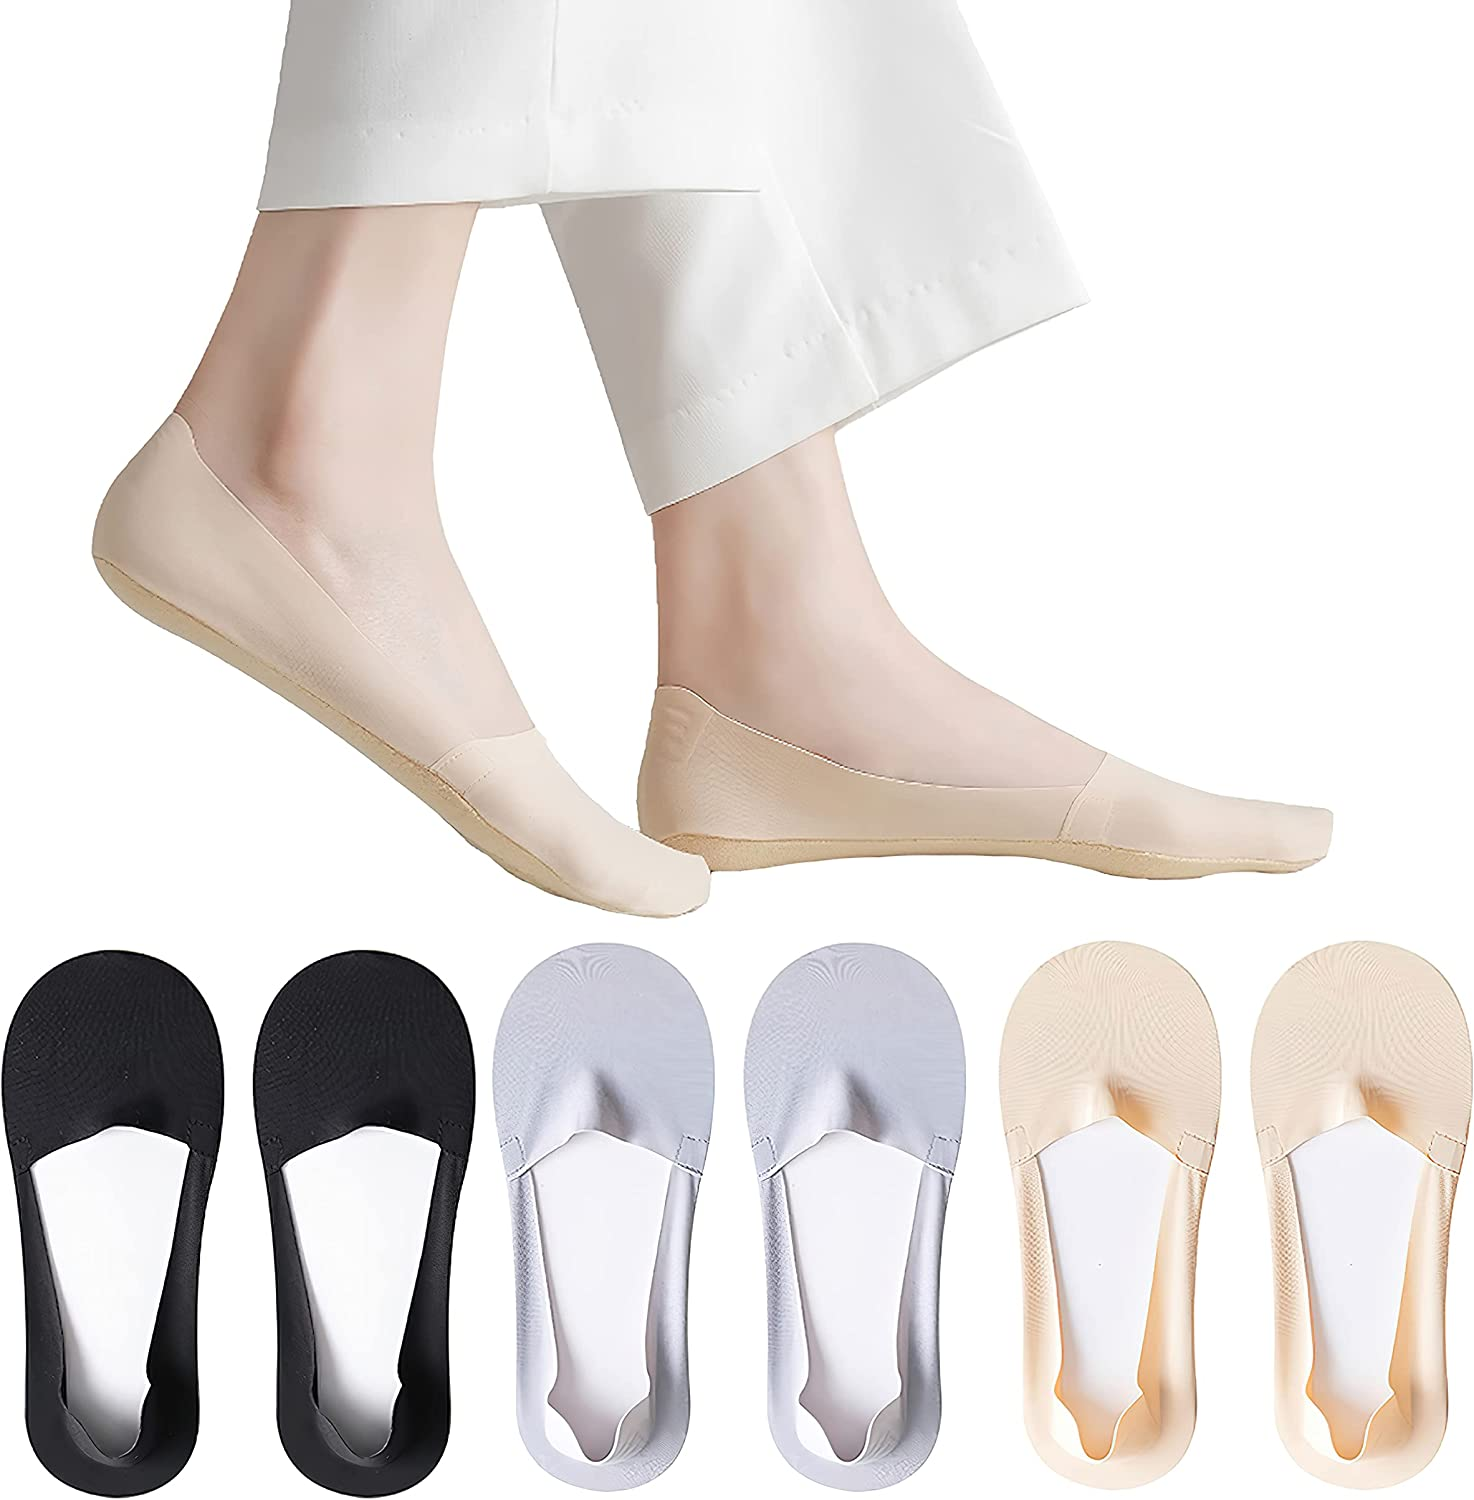 Caudblor Thin No Show Socks, Low Cut Liner Non Slip Invisible Hidden sock for Flat Boat, Cool Comfort Breathable, 6 Pairs